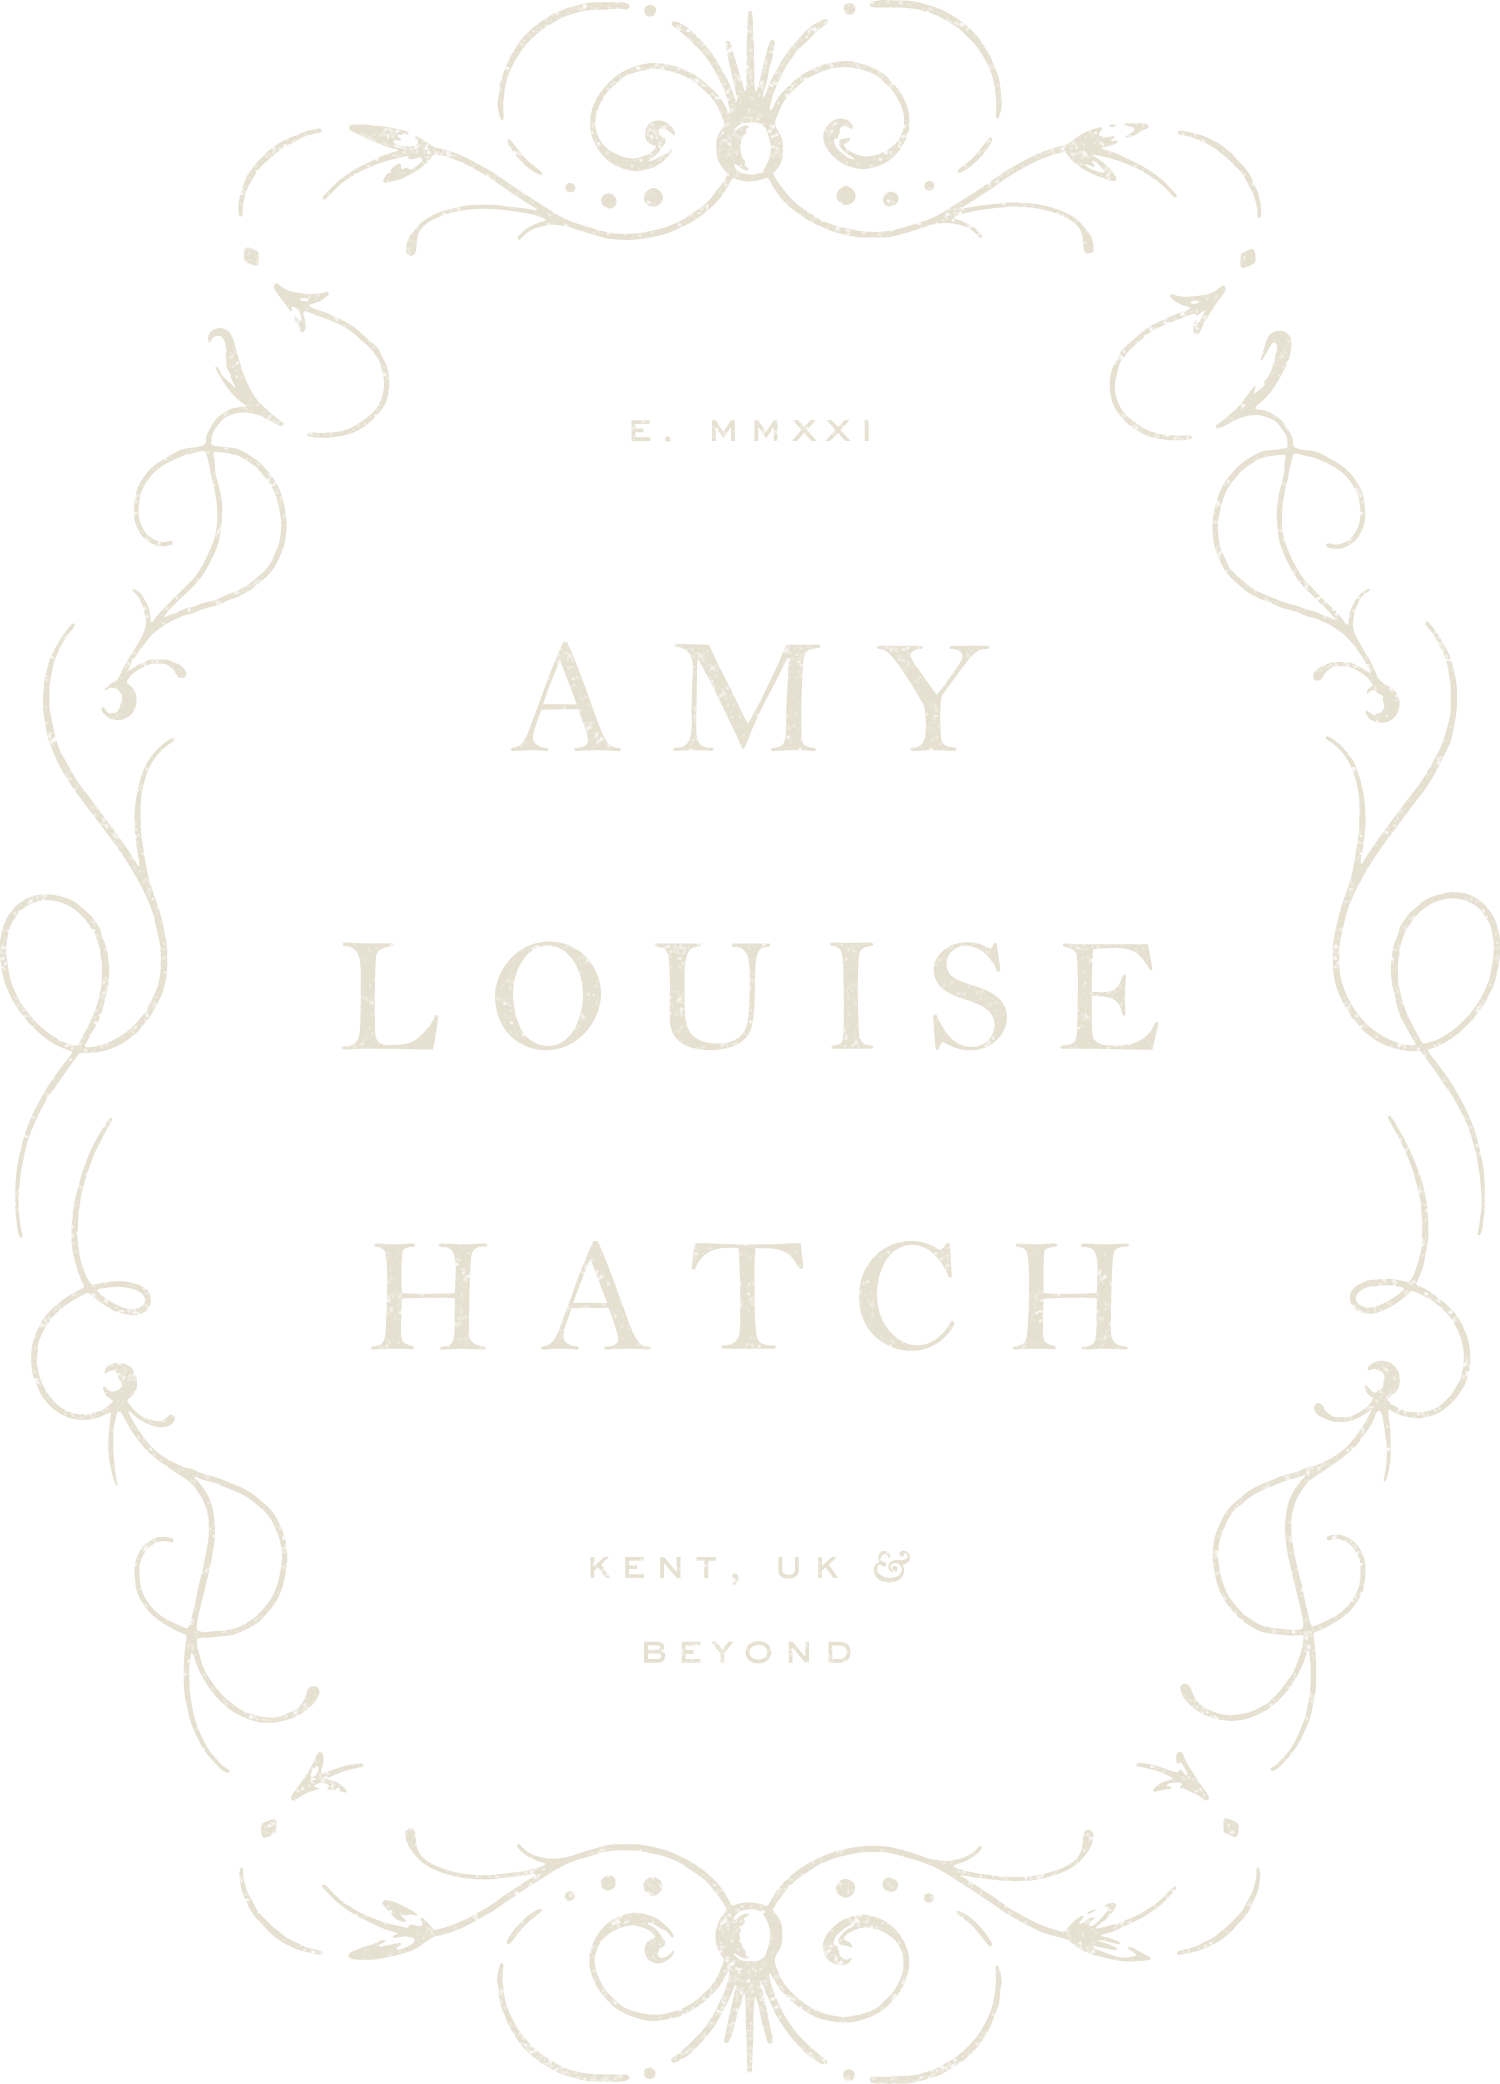 Amy Louise Hatch